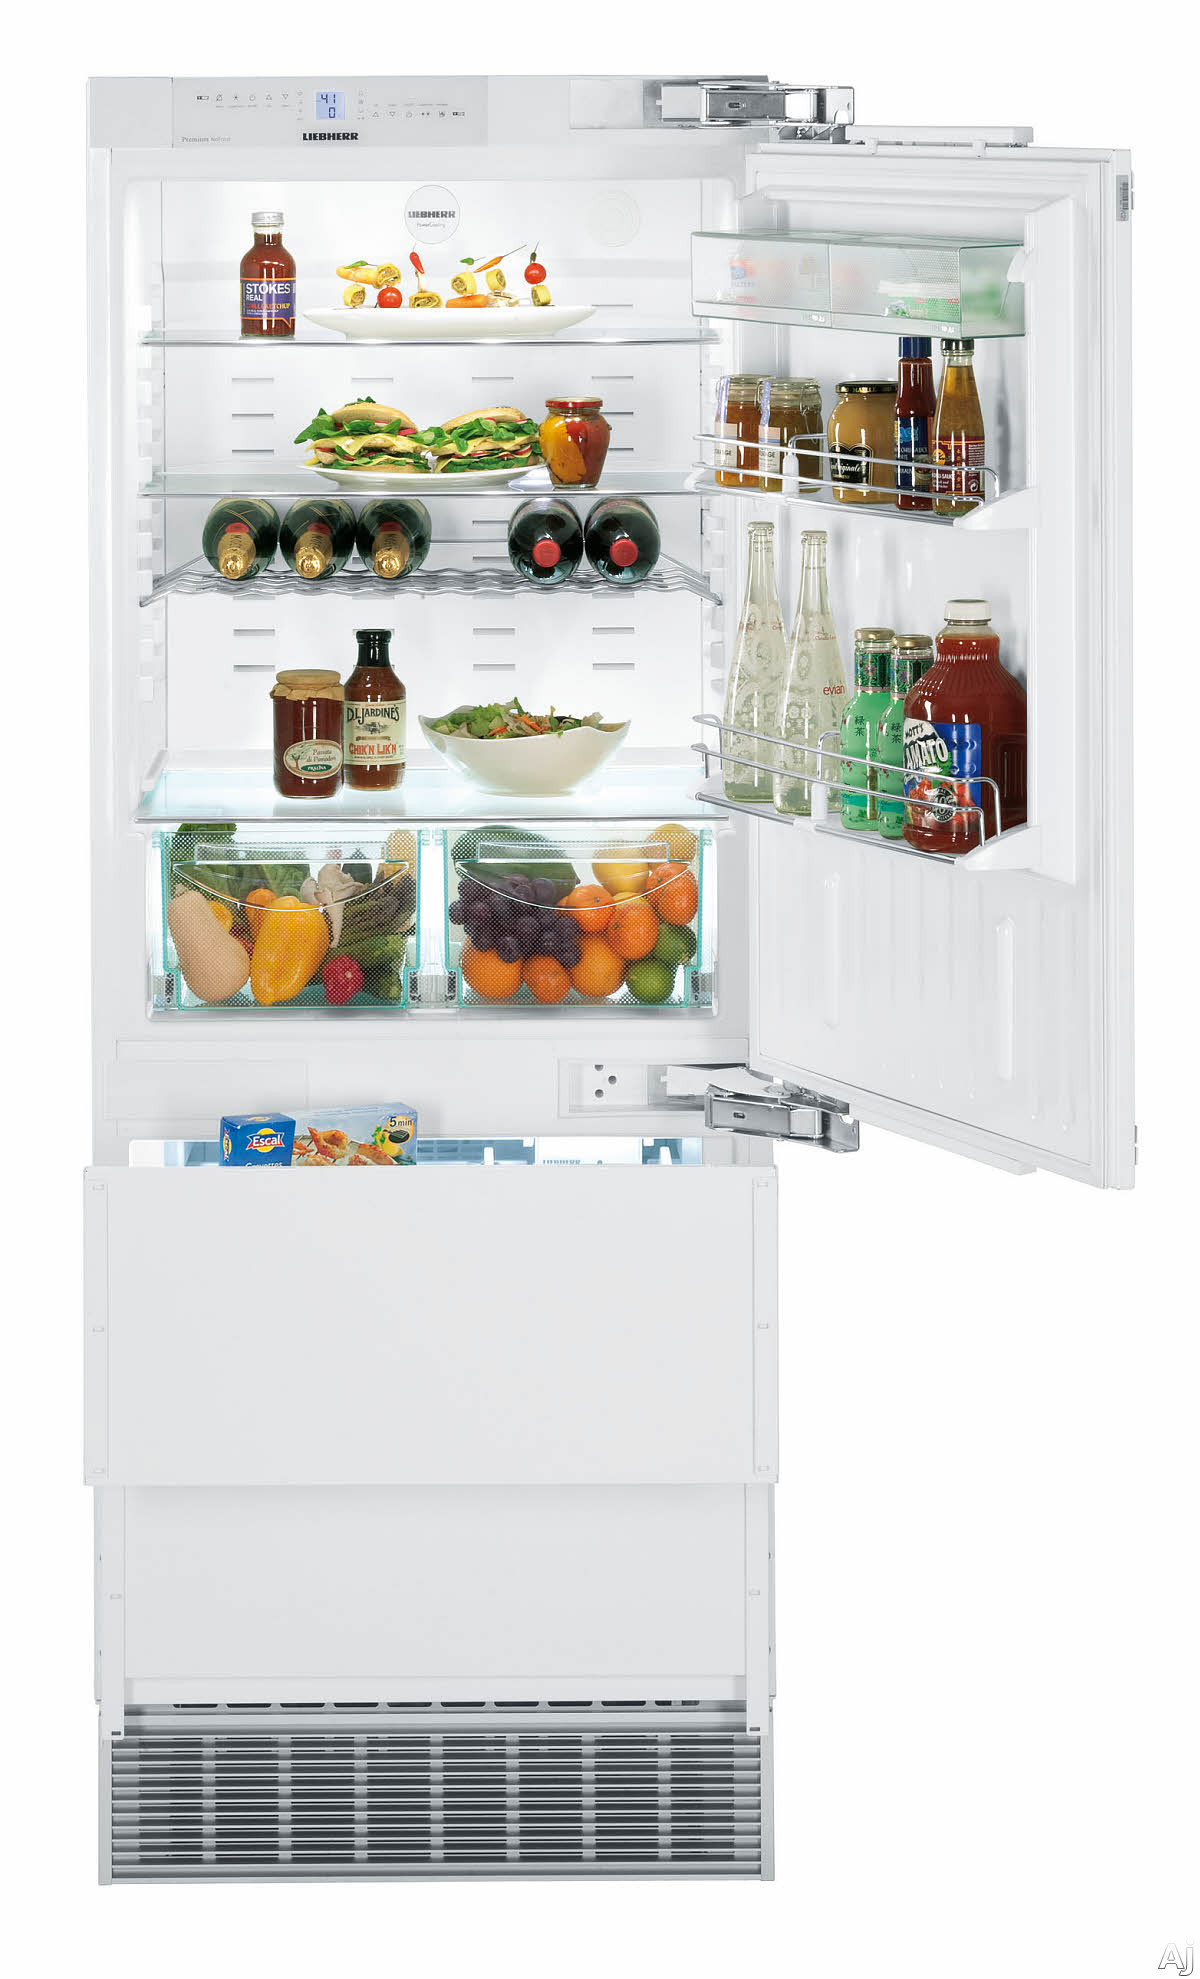 Liebherr HC1550 30 Inch Built-in Panel Ready Refrigerator with 2 Bottom Freezer Drawers, 2 Adjustable GlassLine Shelves, Wine Rack, Adjustable Door Bins, 2 Produce Drawers, Ice Maker, LED Lighting and ENERGY STAR Rated: Right Hinge HC1550